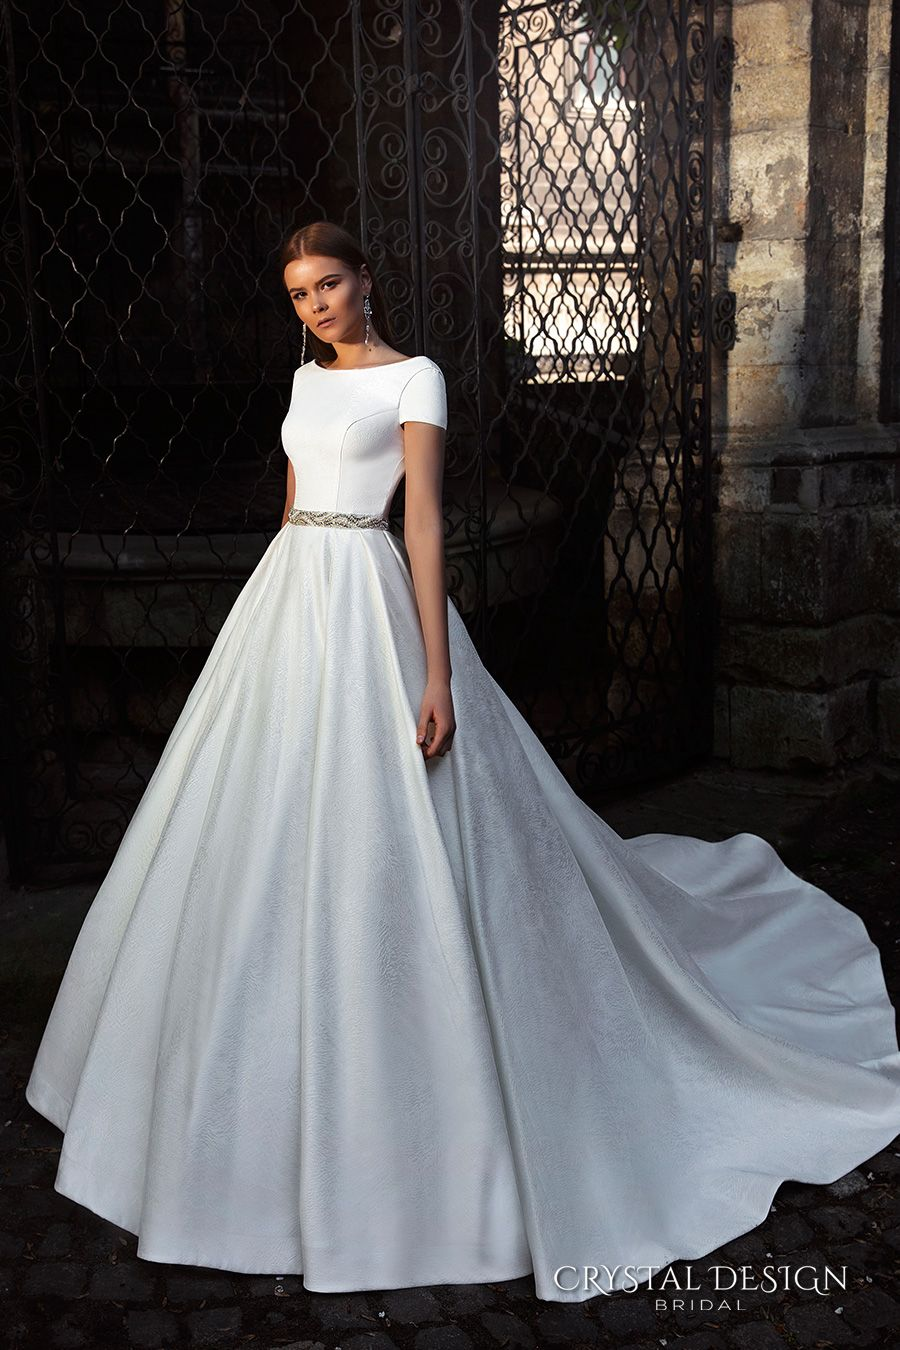 Minimal Wedding Dress Style Less Is More Con Imagenes Vestidos